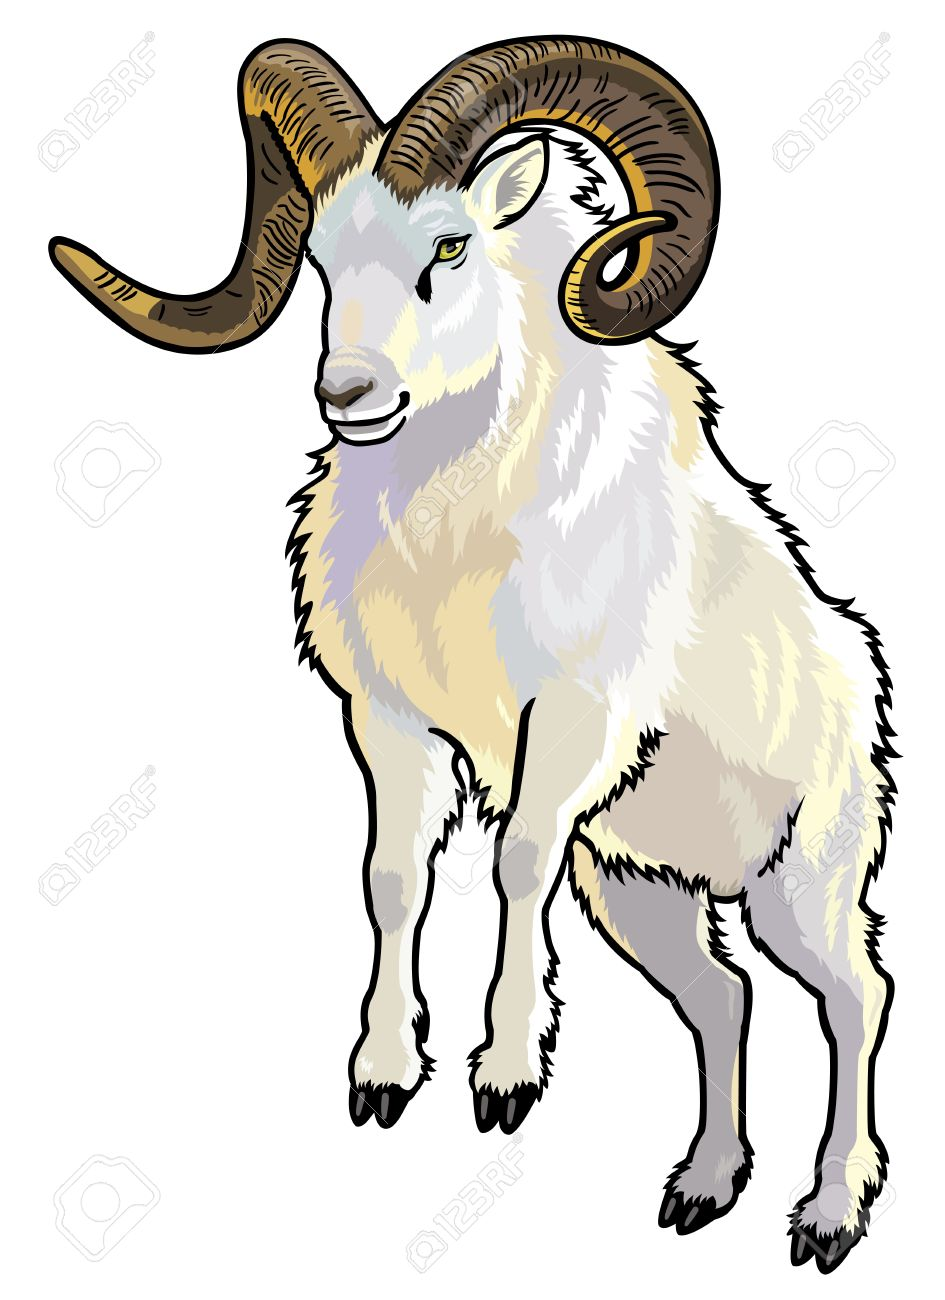 Dall Sheep clipart #18, Download drawings